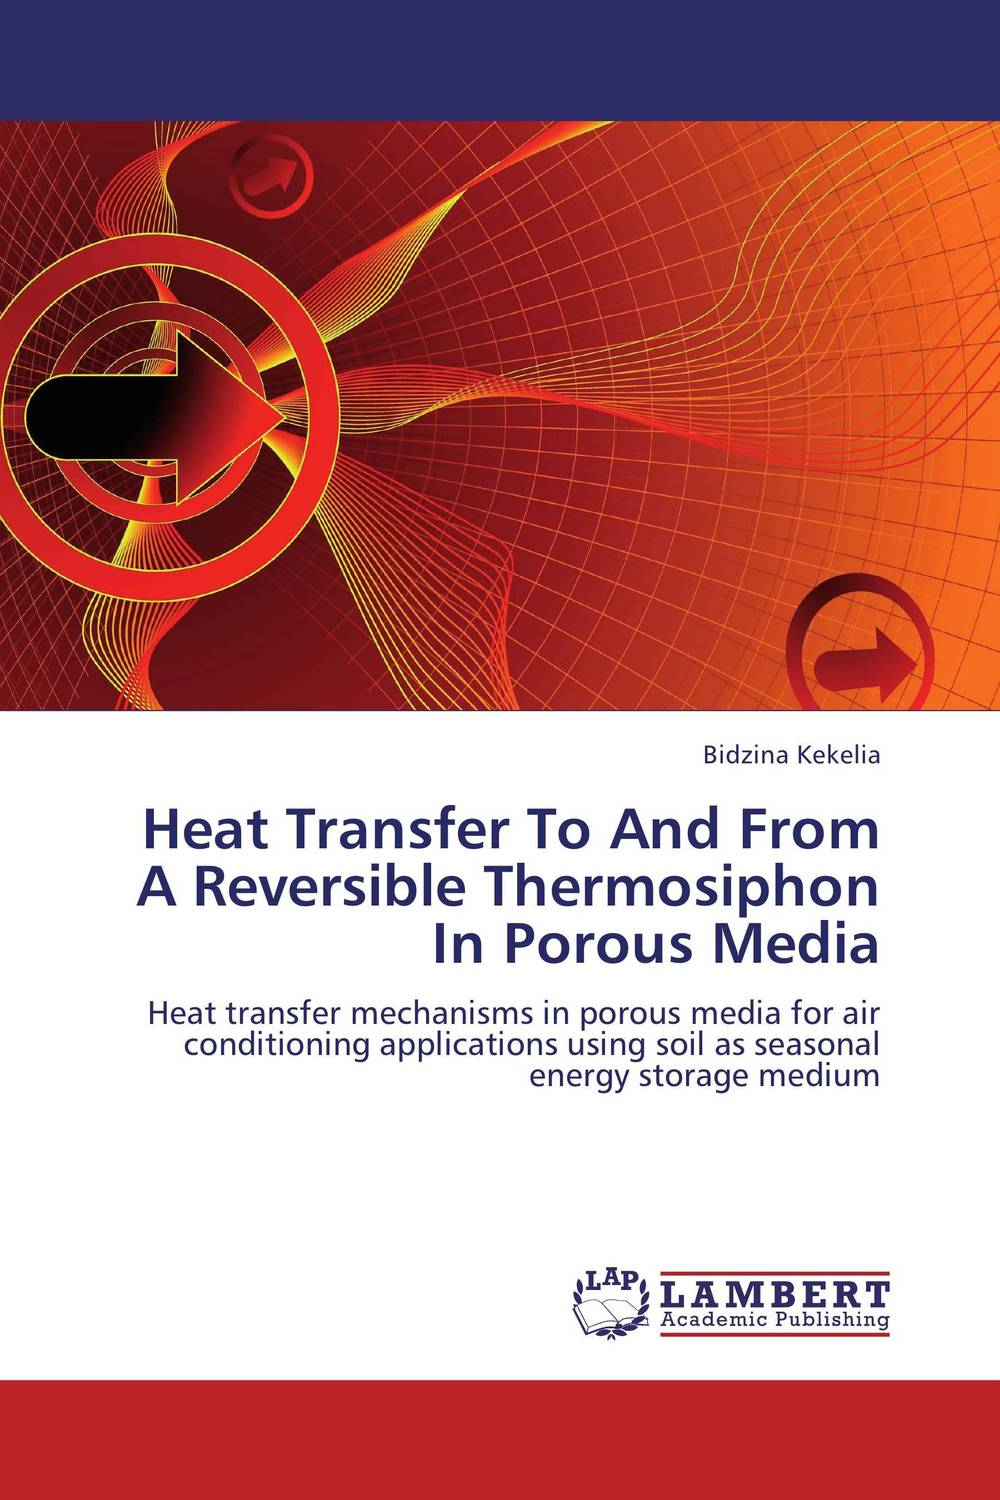 Heat Transfer To And From A Reversible Thermosiphon In Porous Media economizer forces heat transmission from liquid to vapour effectively and keep pressure drop down to a reasonable level